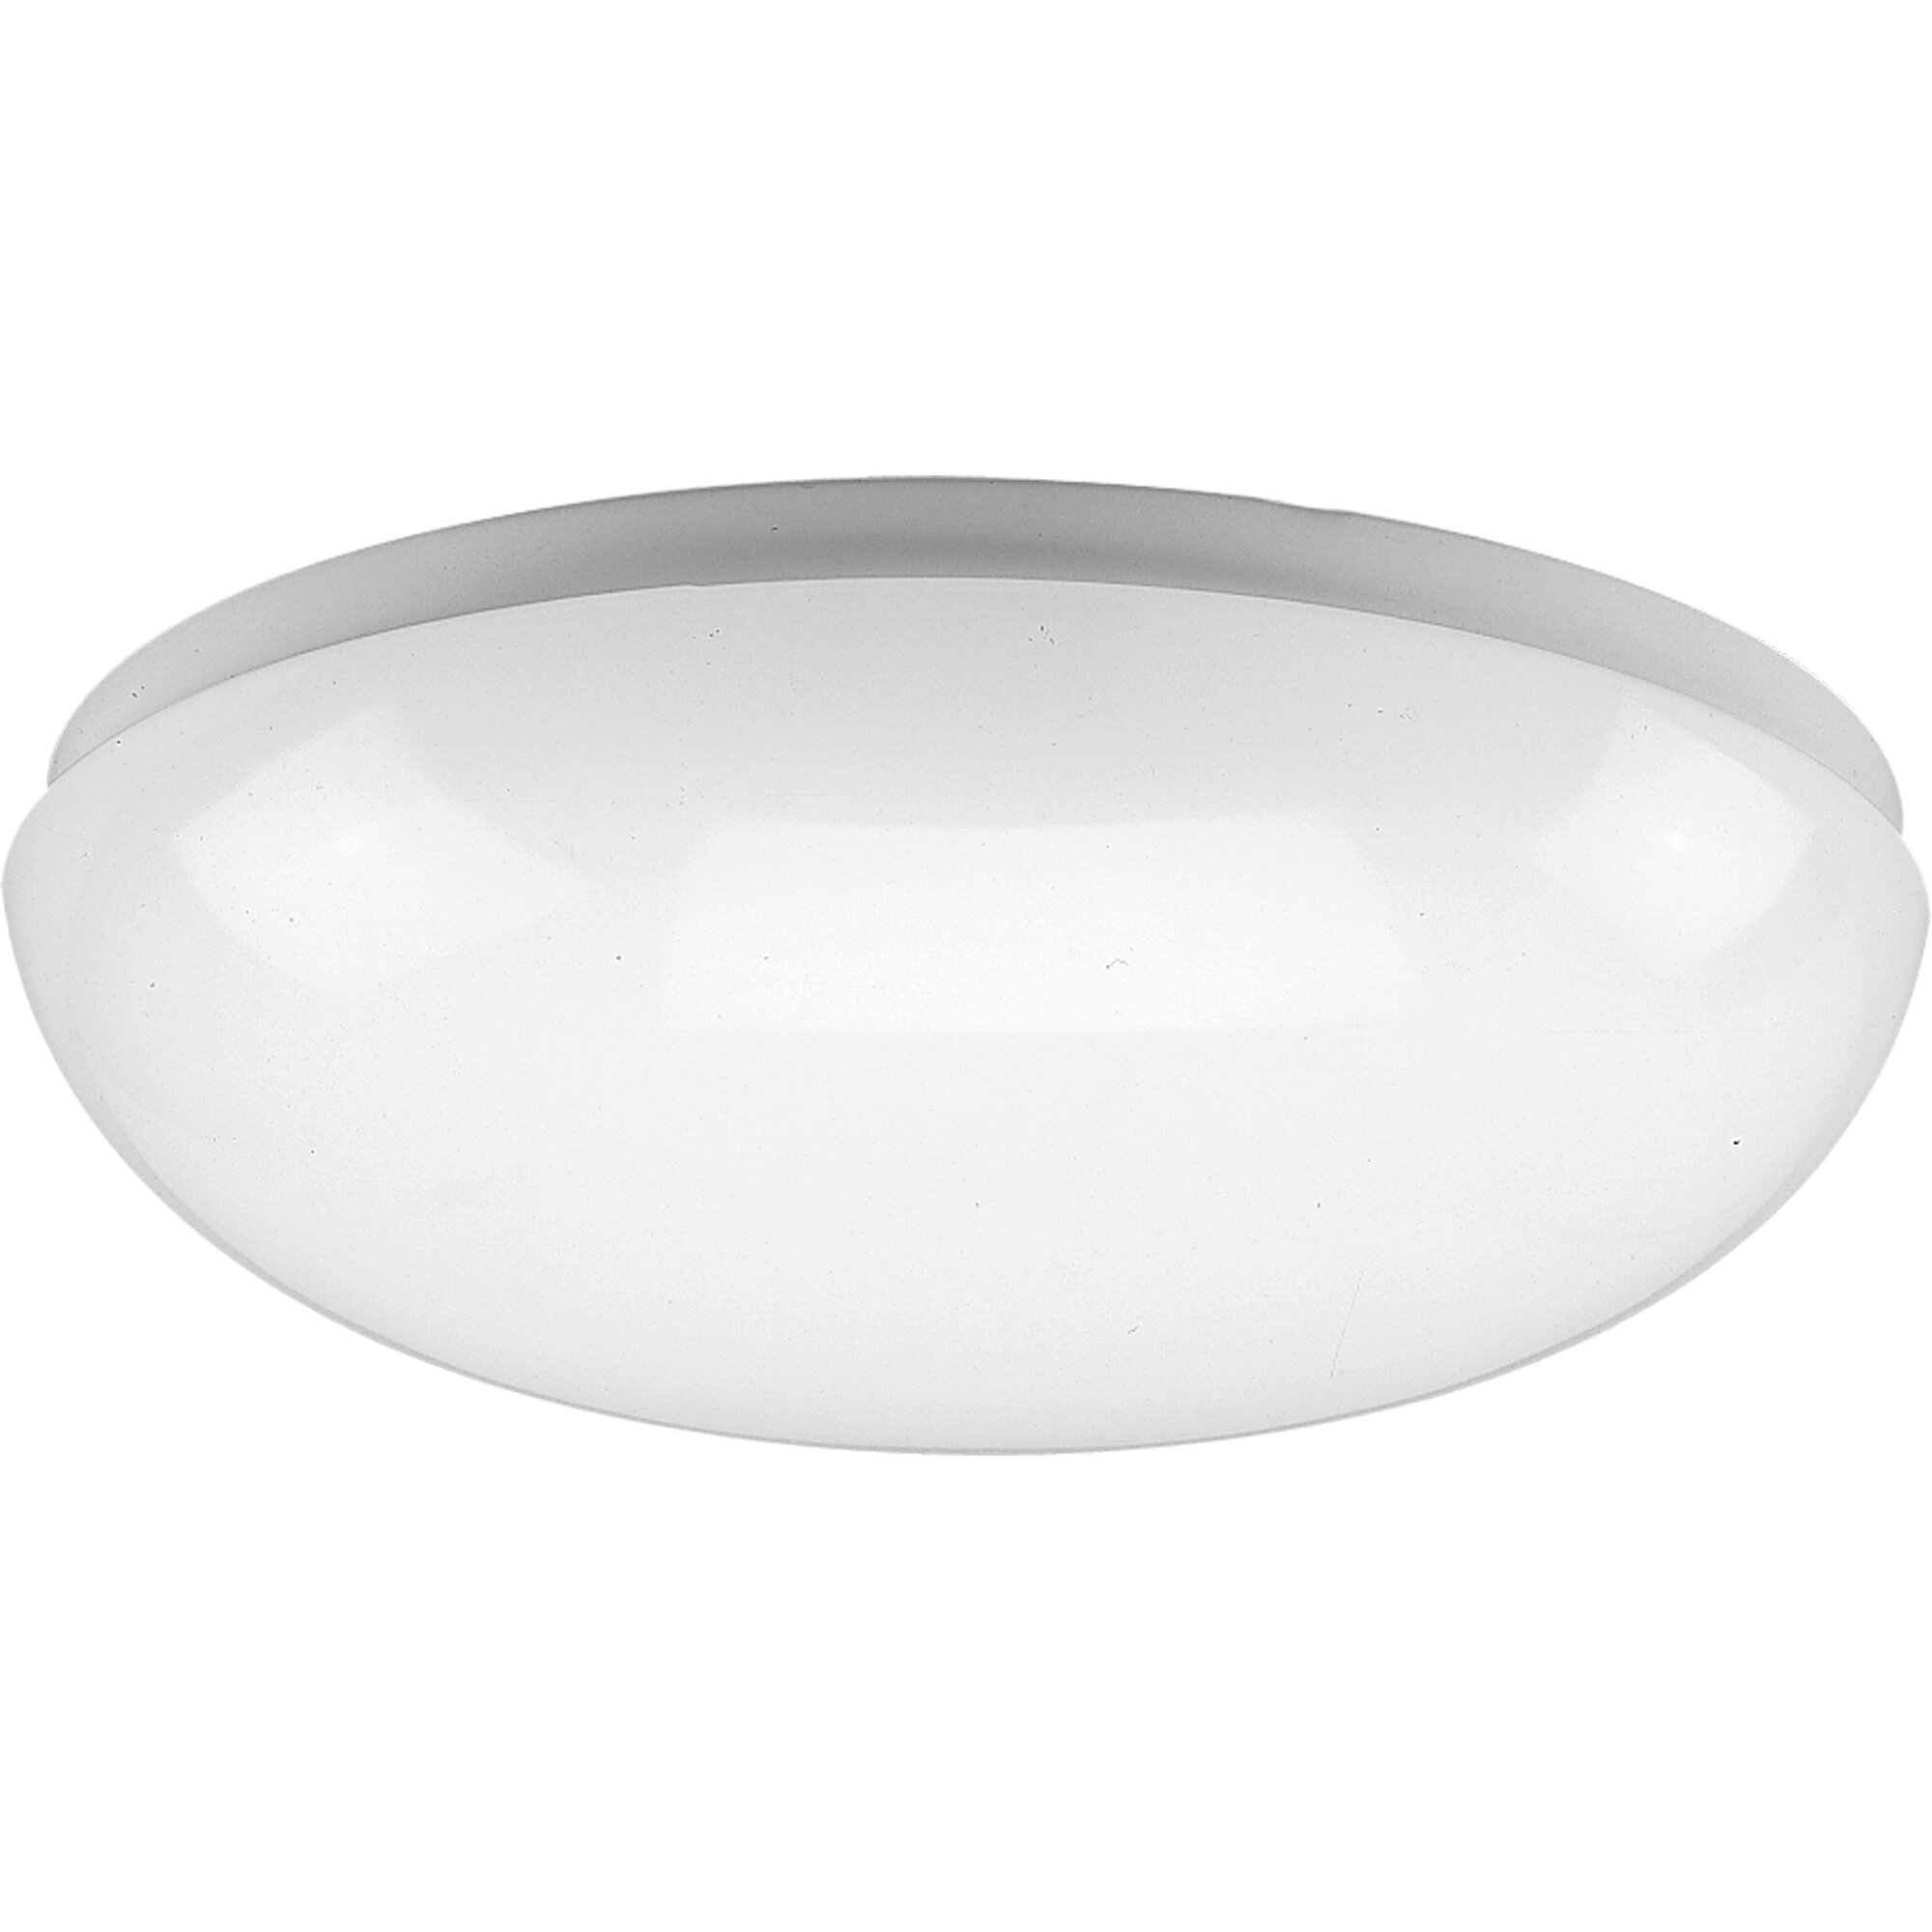 round white fluorescent ceiling cloud by progress lighting. Black Bedroom Furniture Sets. Home Design Ideas